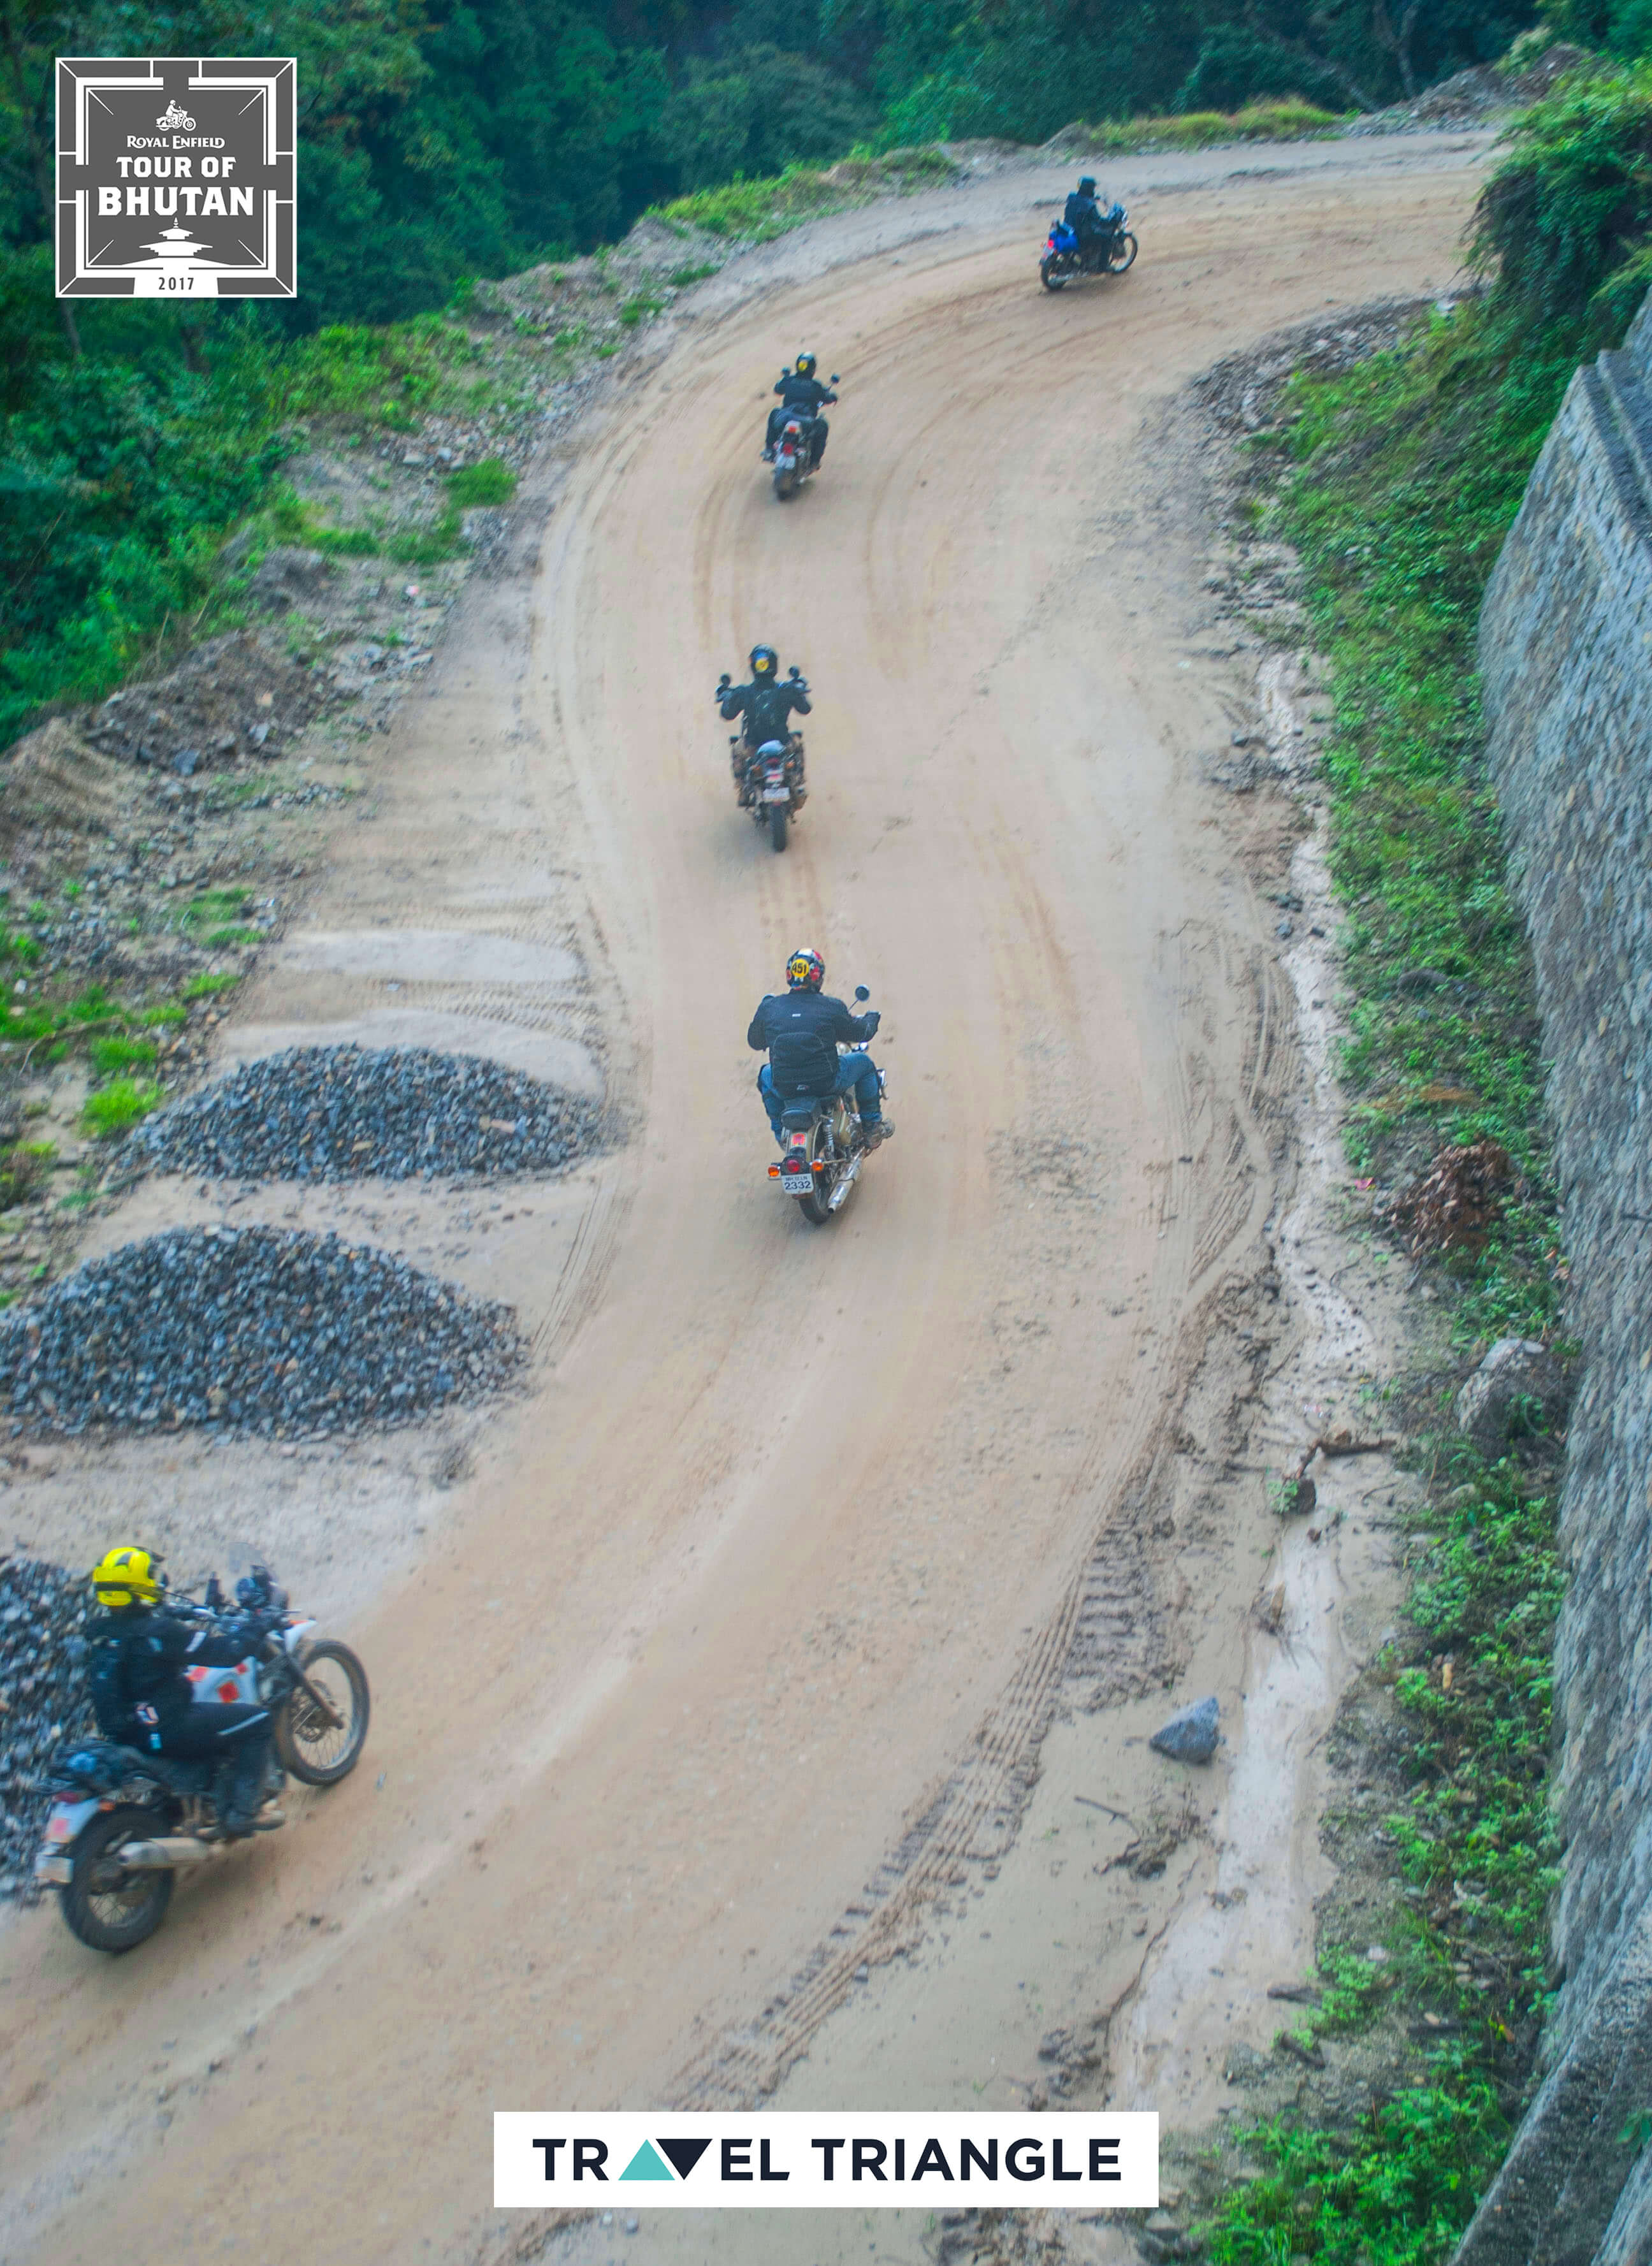 Mongar to Trashigang: the riders making their way together